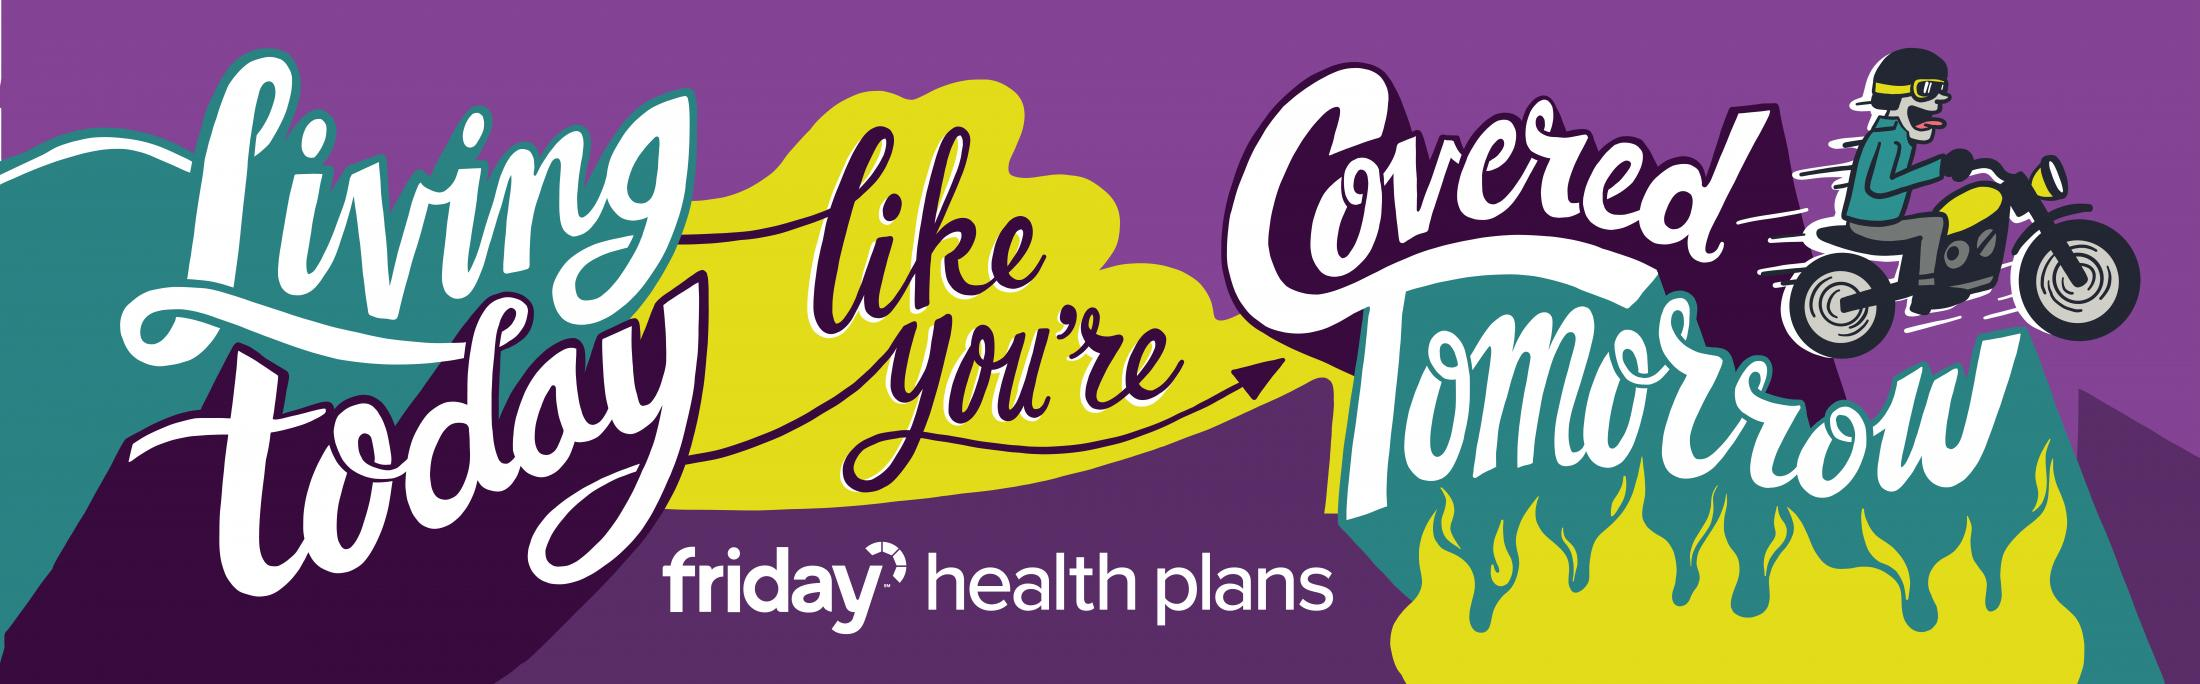 Friday Health Plans Outdoor Ad - Livin